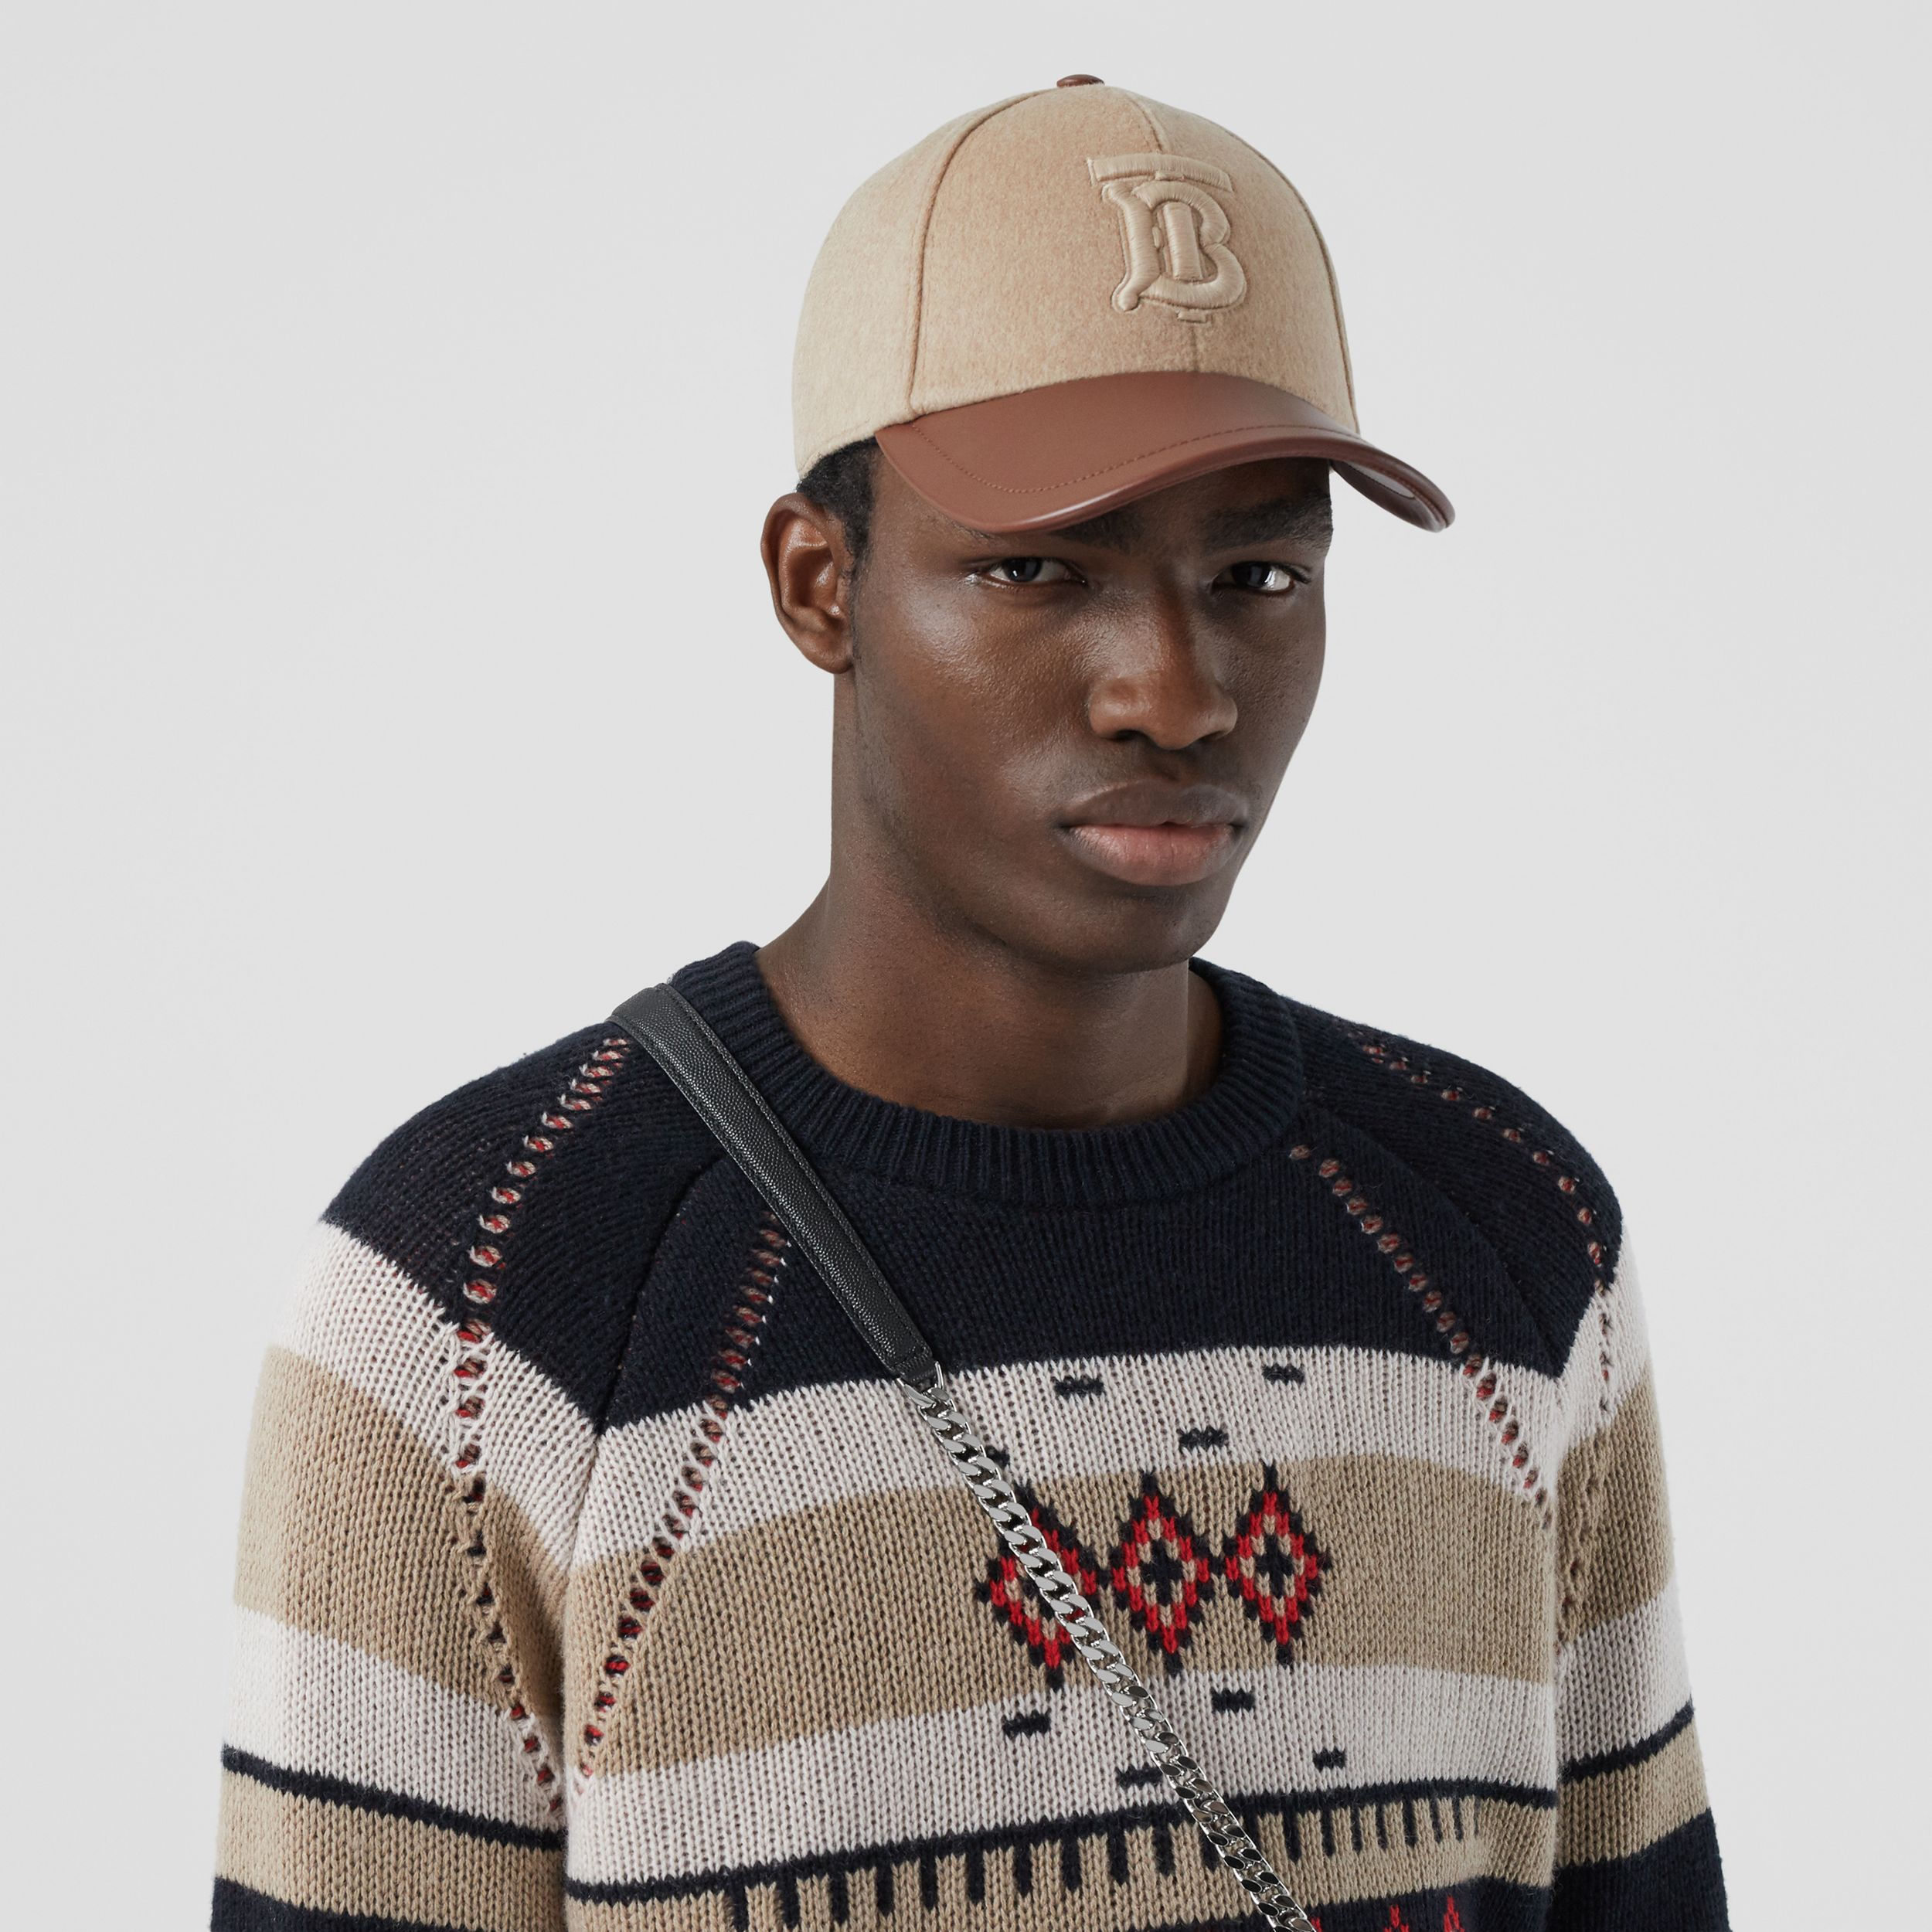 Monogram Motif Cashmere and Leather Baseball Cap in Camel | Burberry Canada - 4